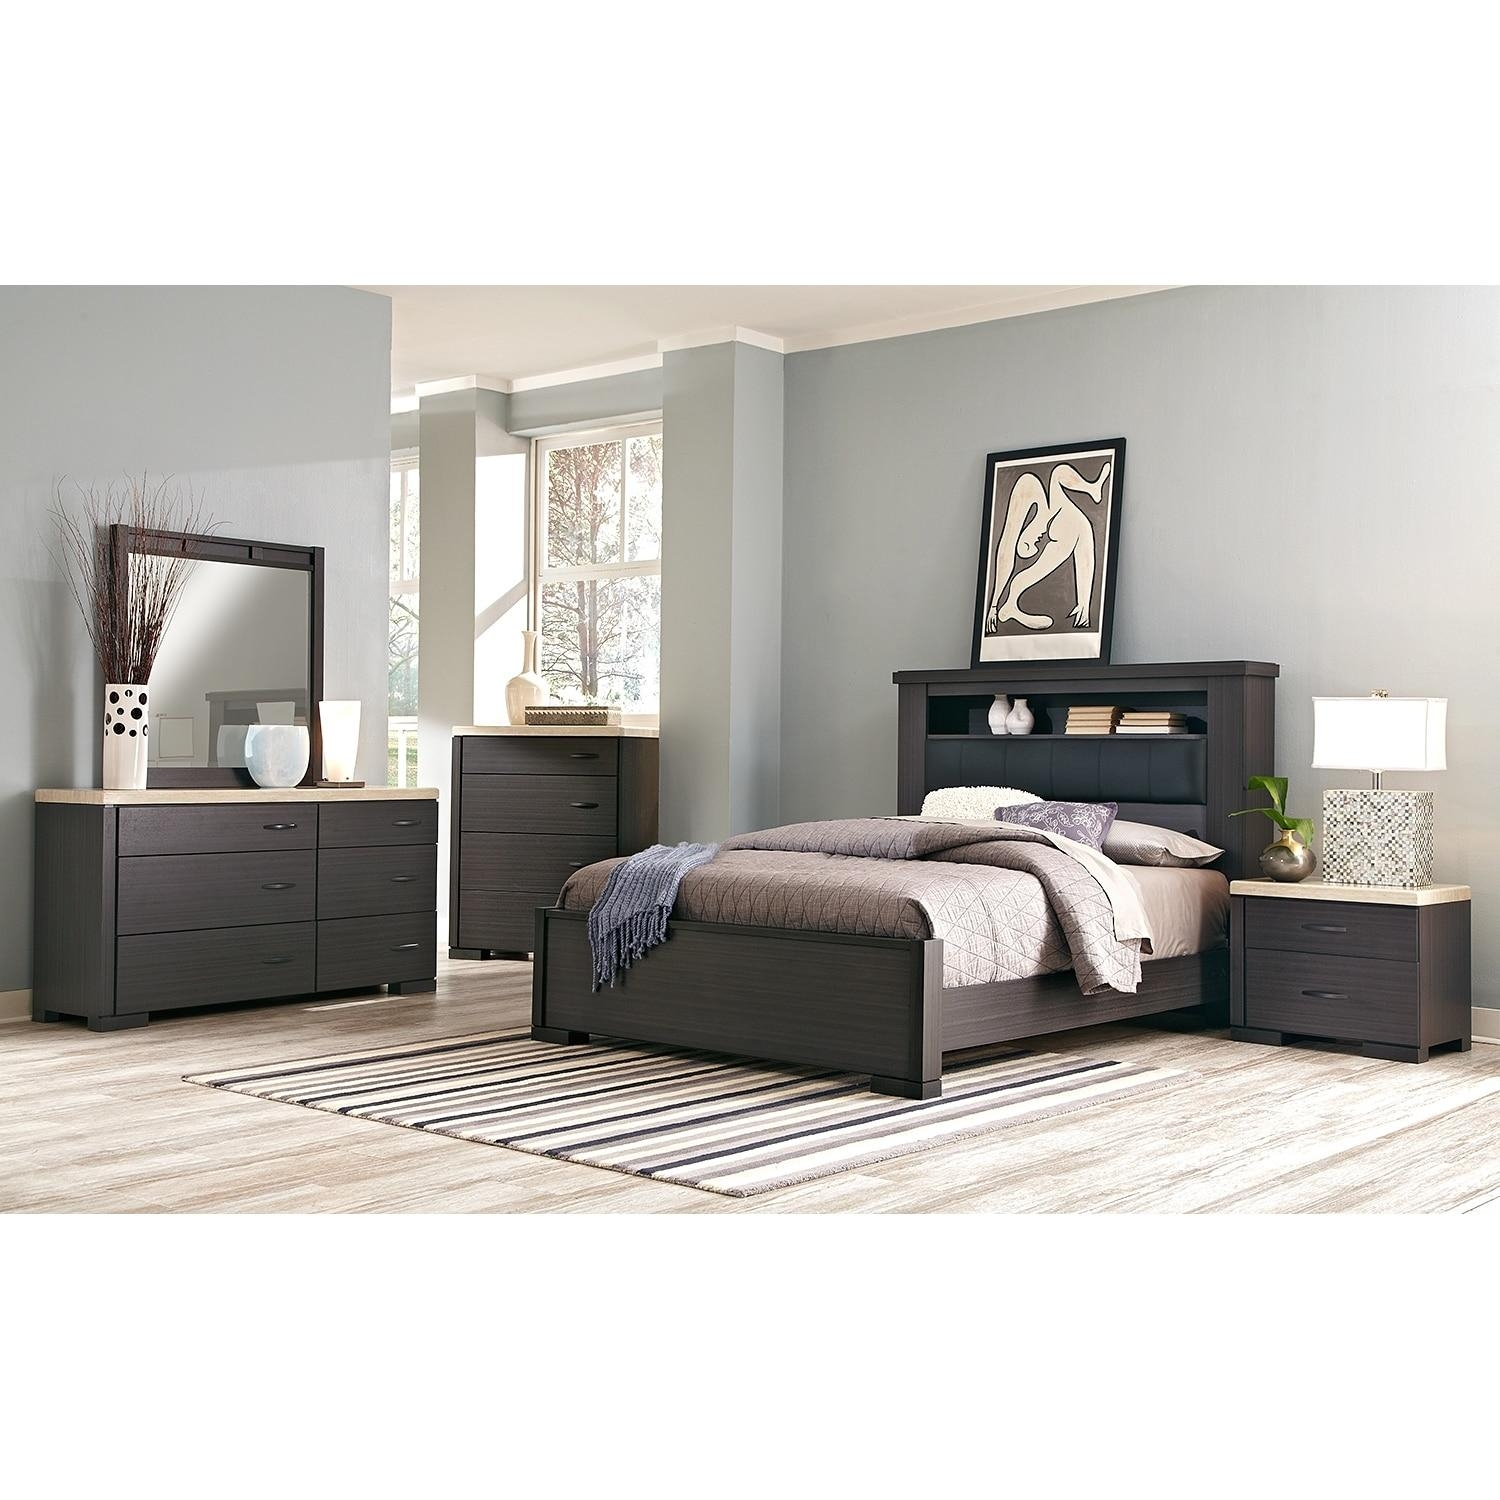 Furniture: Value City Furniture Outlet | Value City Furniture Throughout Sofas Cincinnati (View 13 of 20)